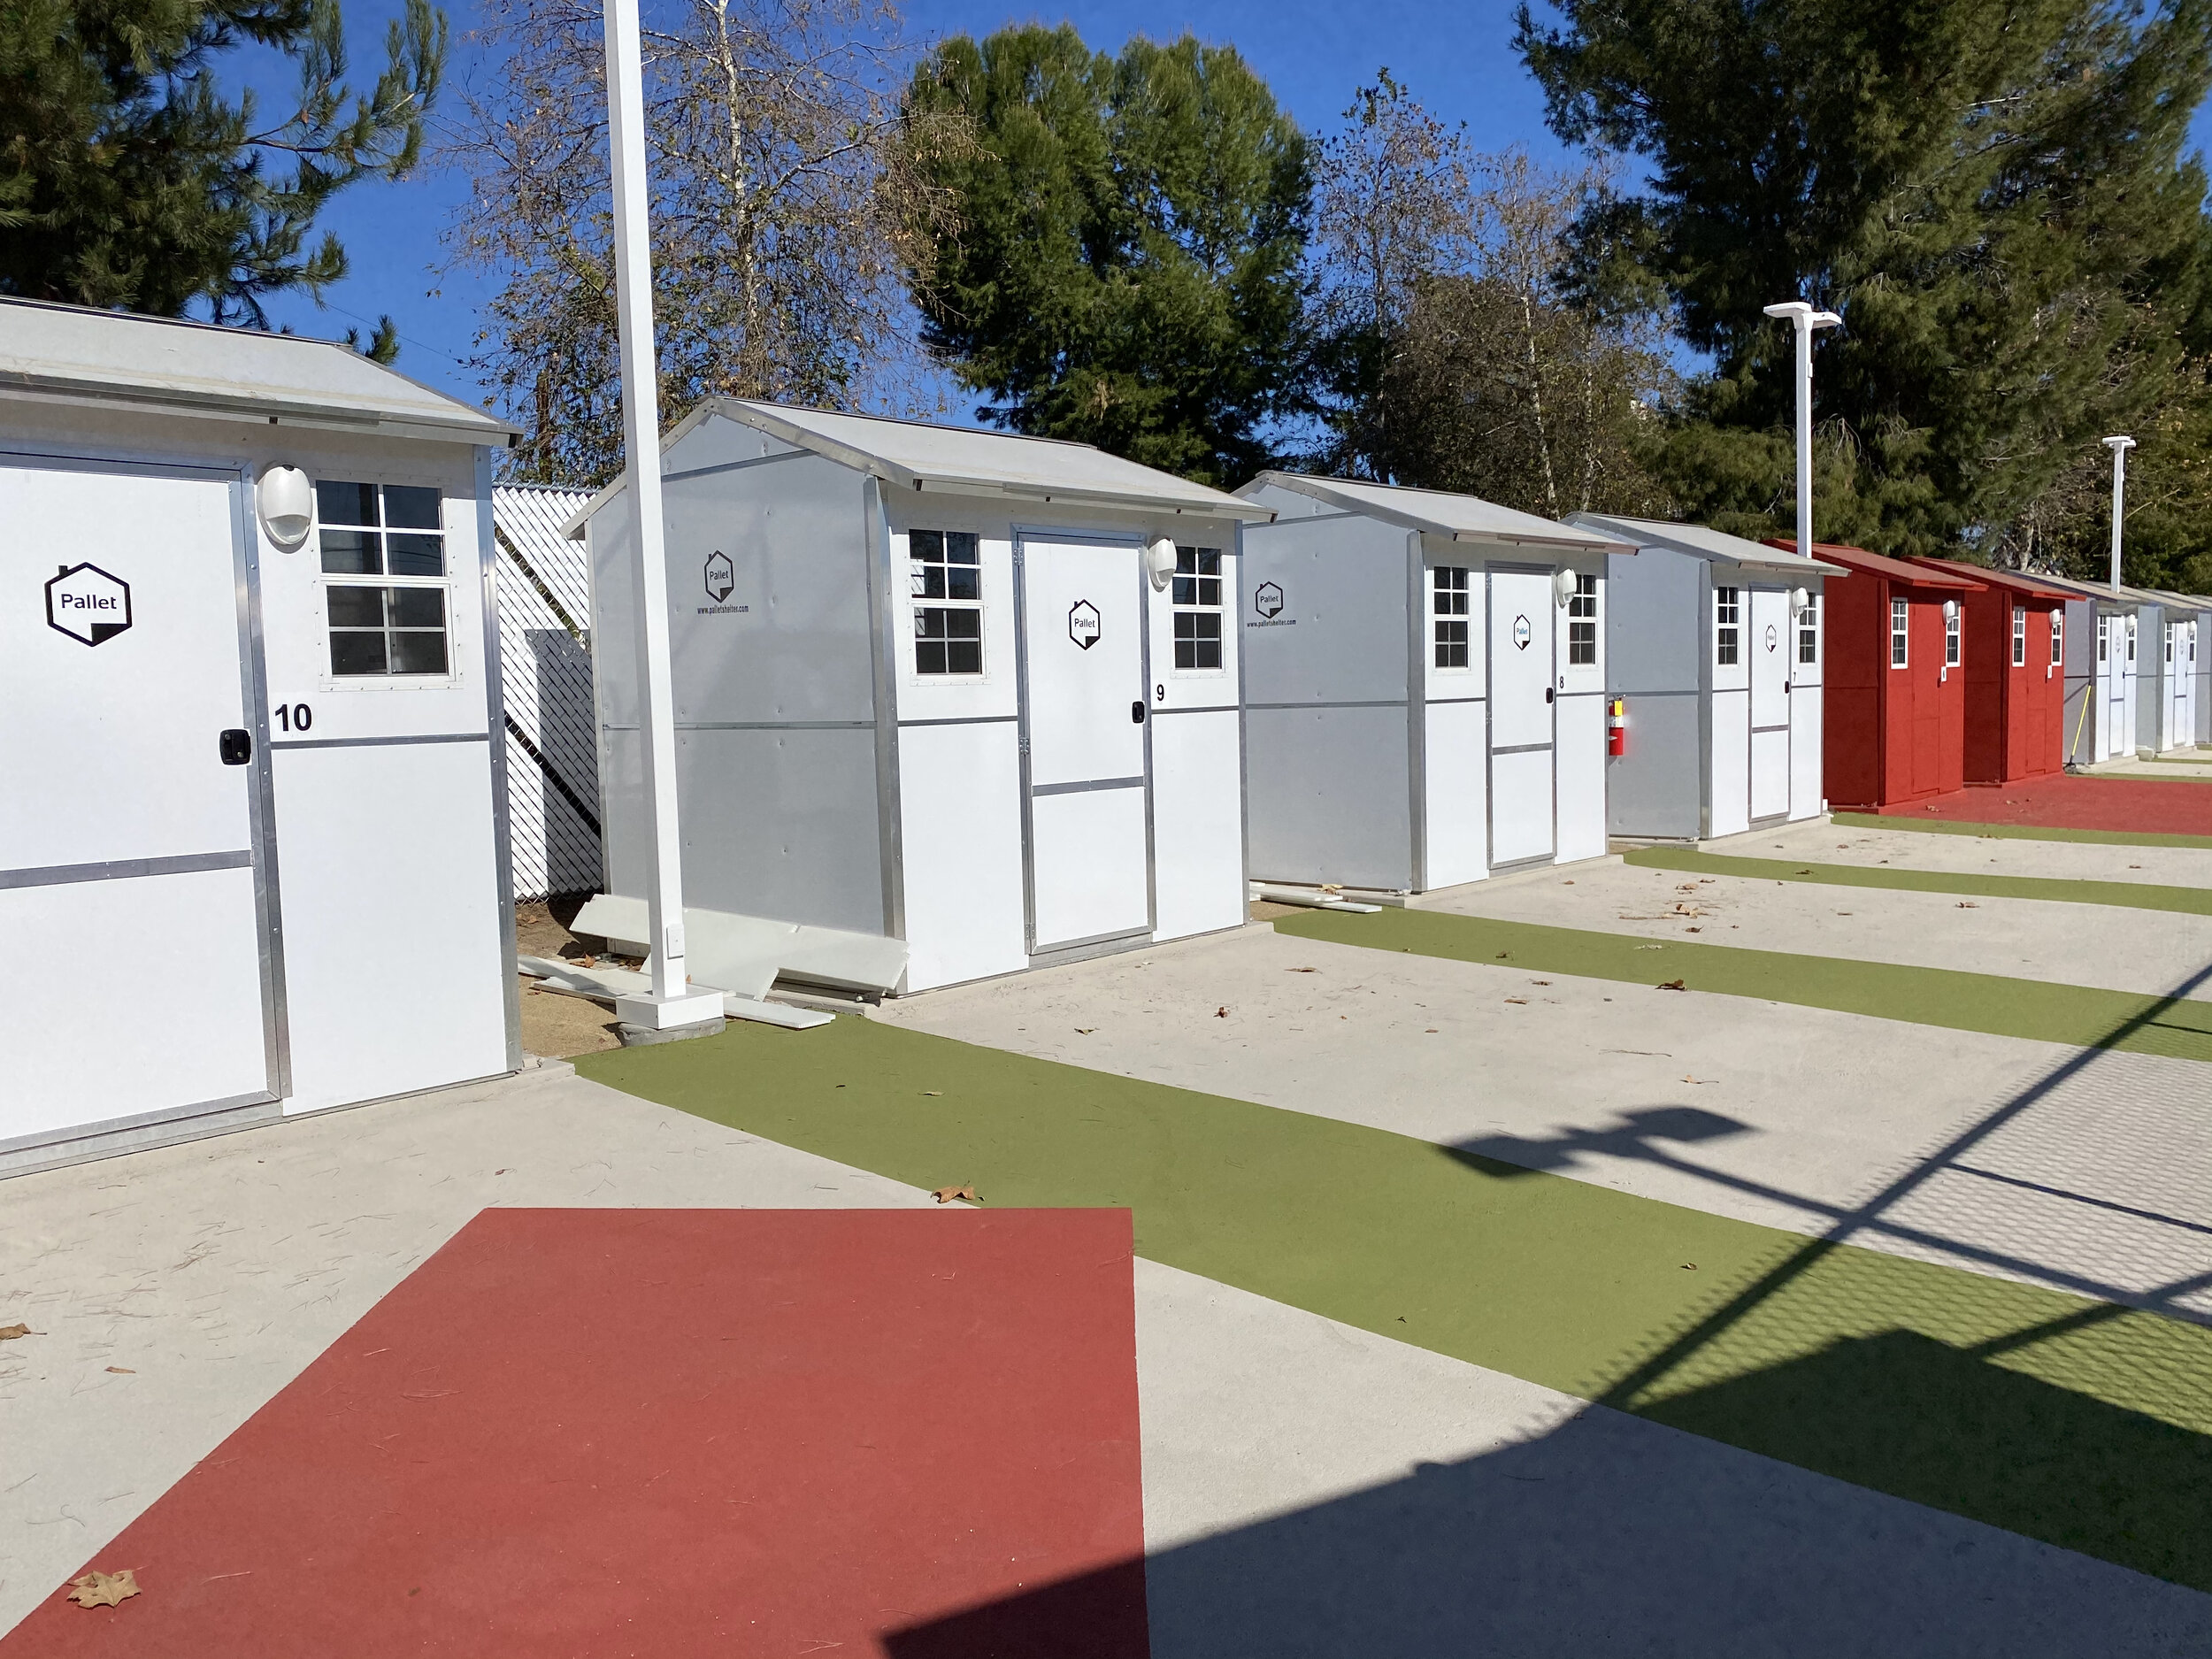 Chandler Blvd. Tiny Home Village in Los Angeles, California. Photo courtesy Hope of the Valley Rescue Mission